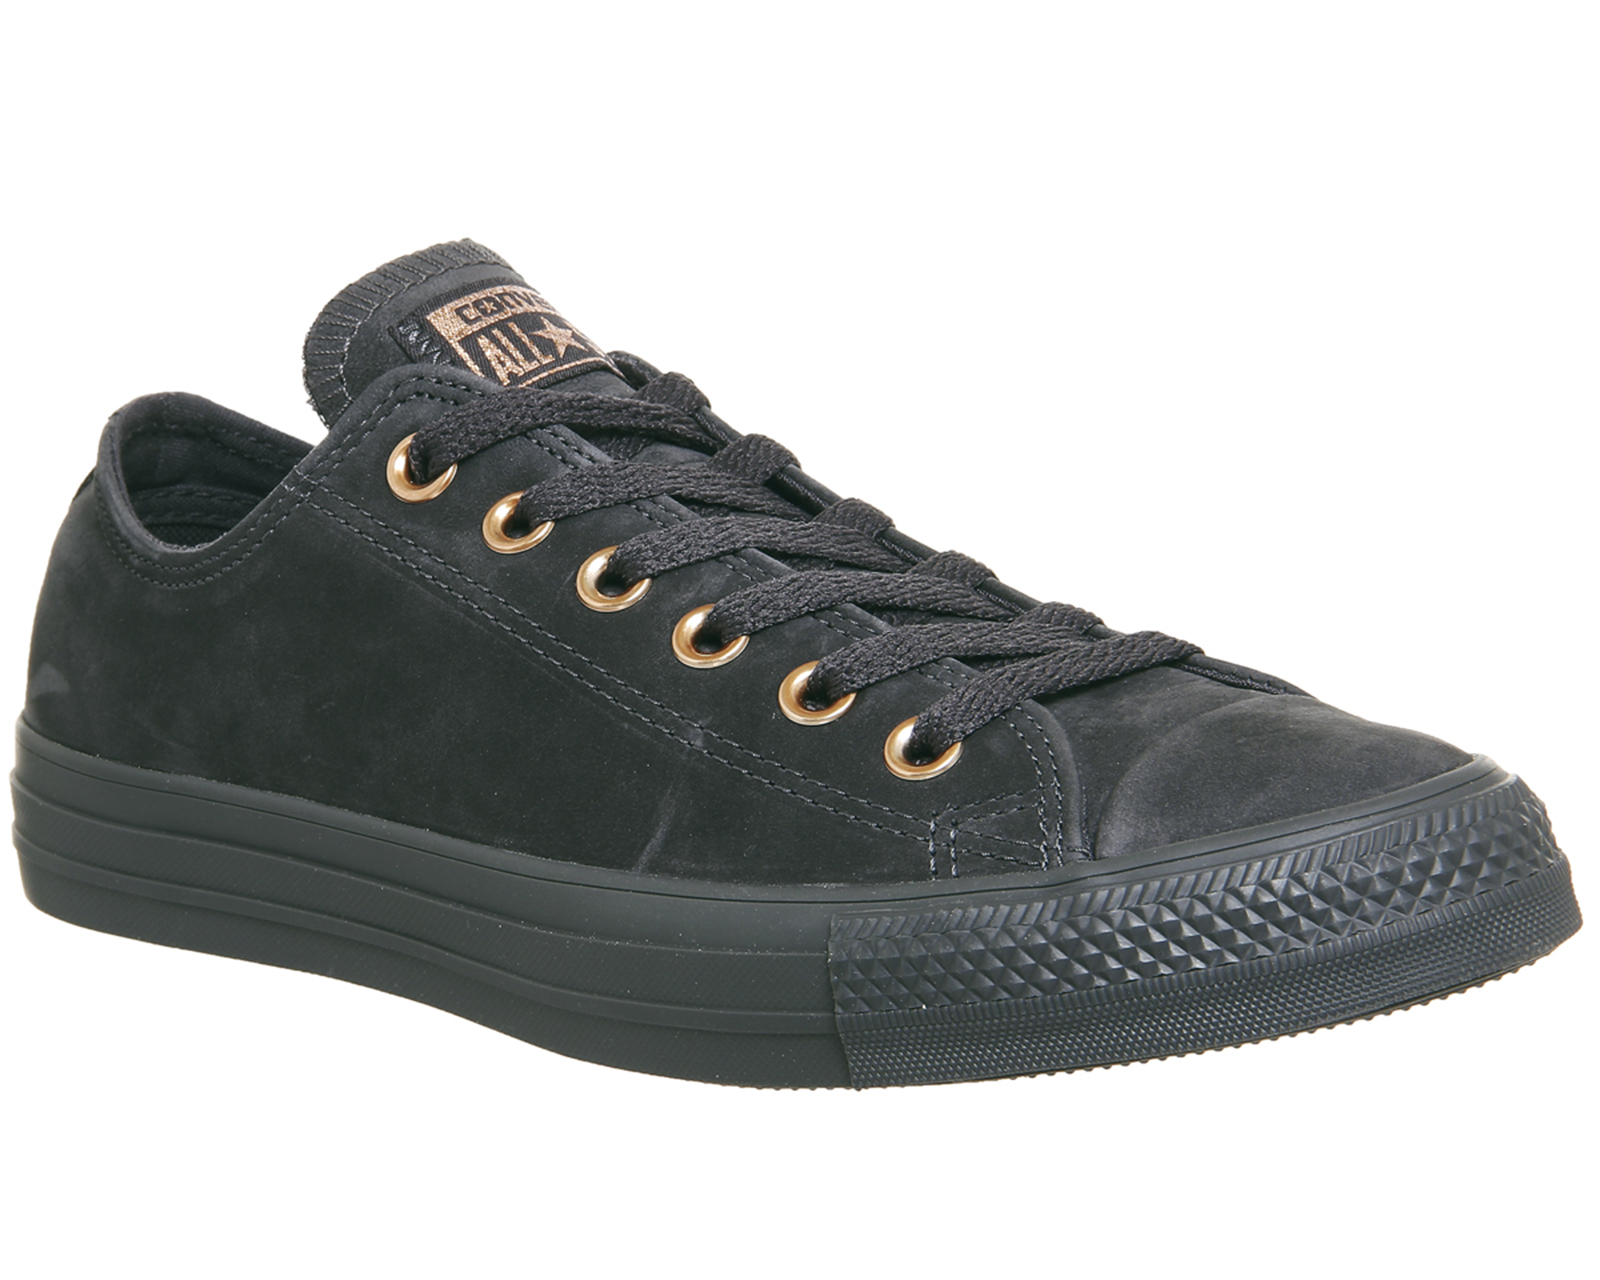 8316aef3f954d8 ... italy sentinel womens converse black leather lace up trainers size uk 7  ex display 6db14 c7163